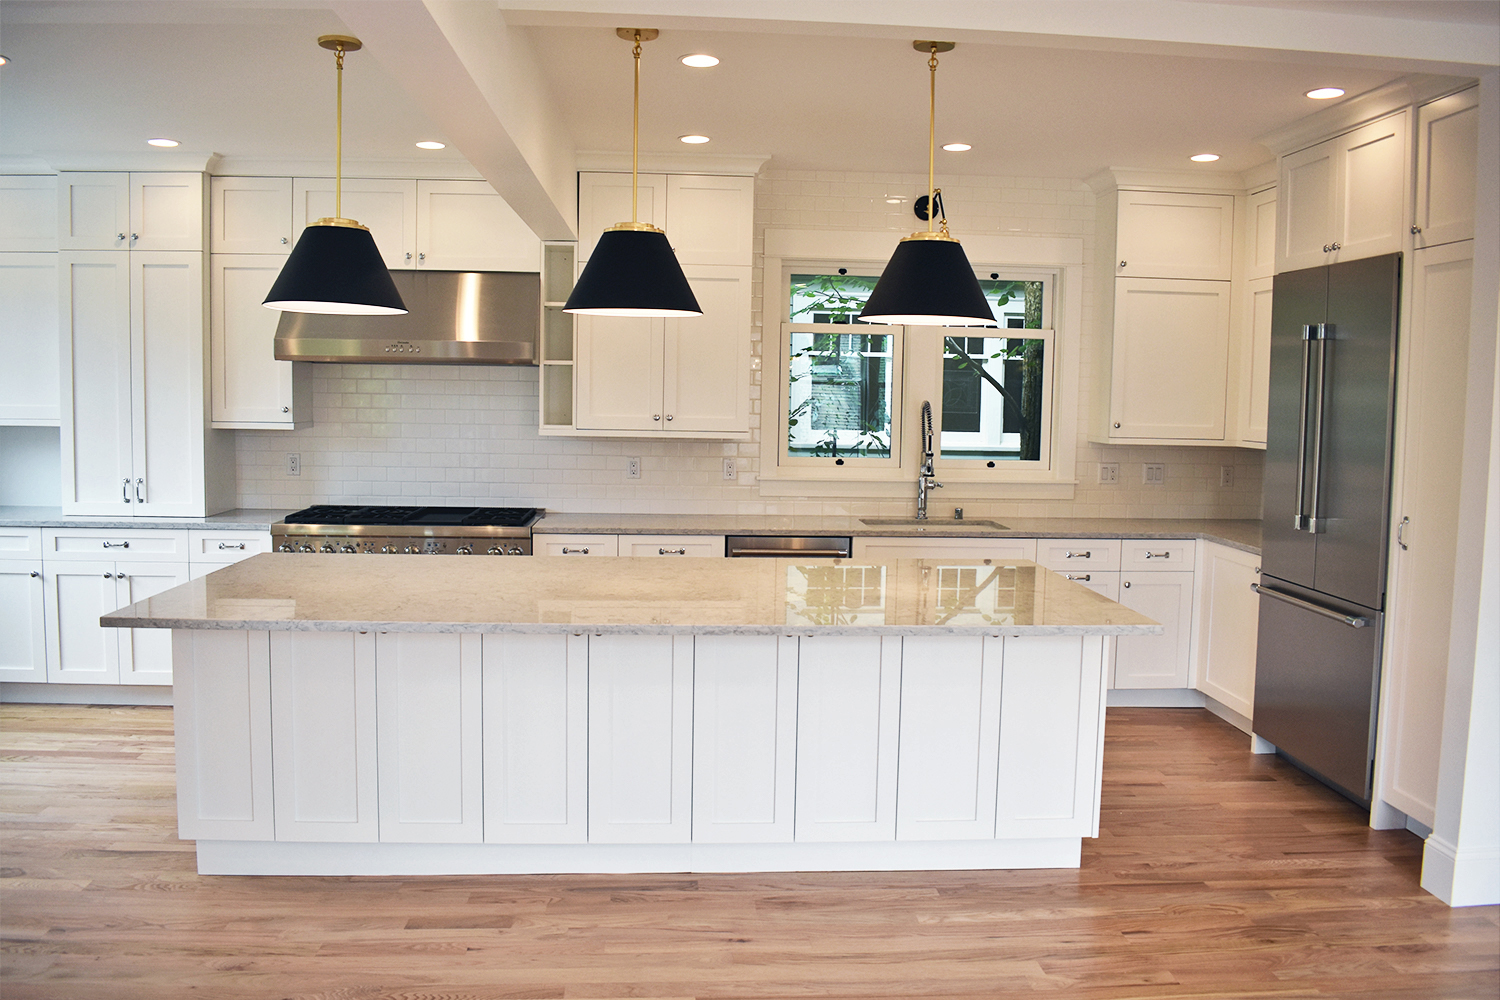 Kitchen Remodel: New Island and Lighting